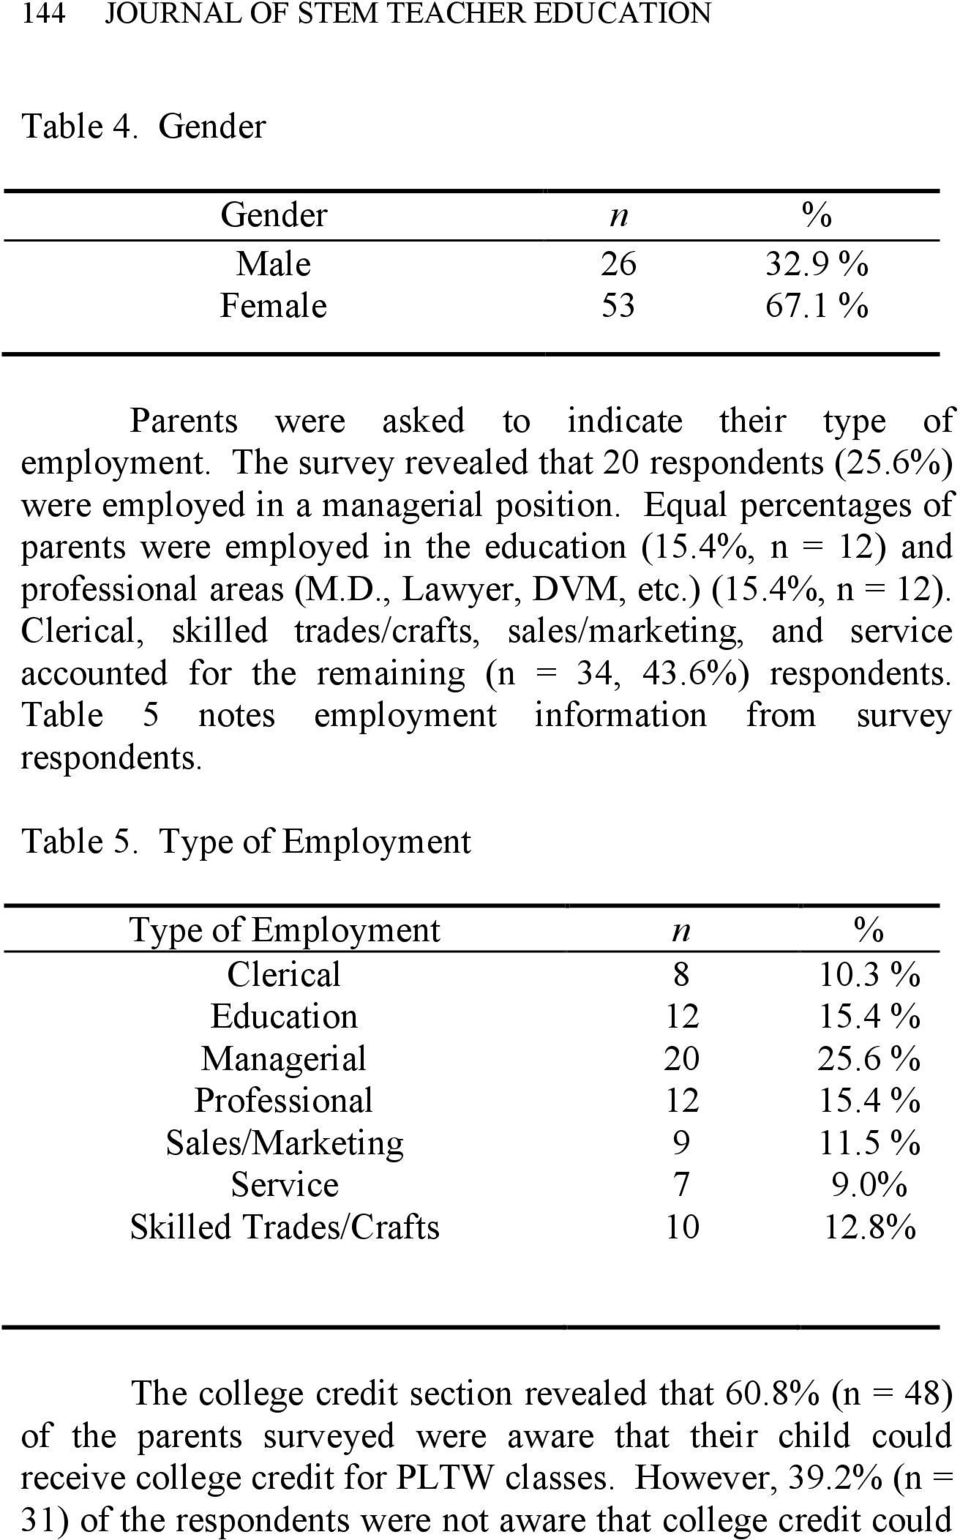 and professional areas (M.D., Lawyer, DVM, etc.) (15.4%, n = 12). Clerical, skilled trades/crafts, sales/marketing, and service accounted for the remaining (n = 34, 43.6%) respondents.